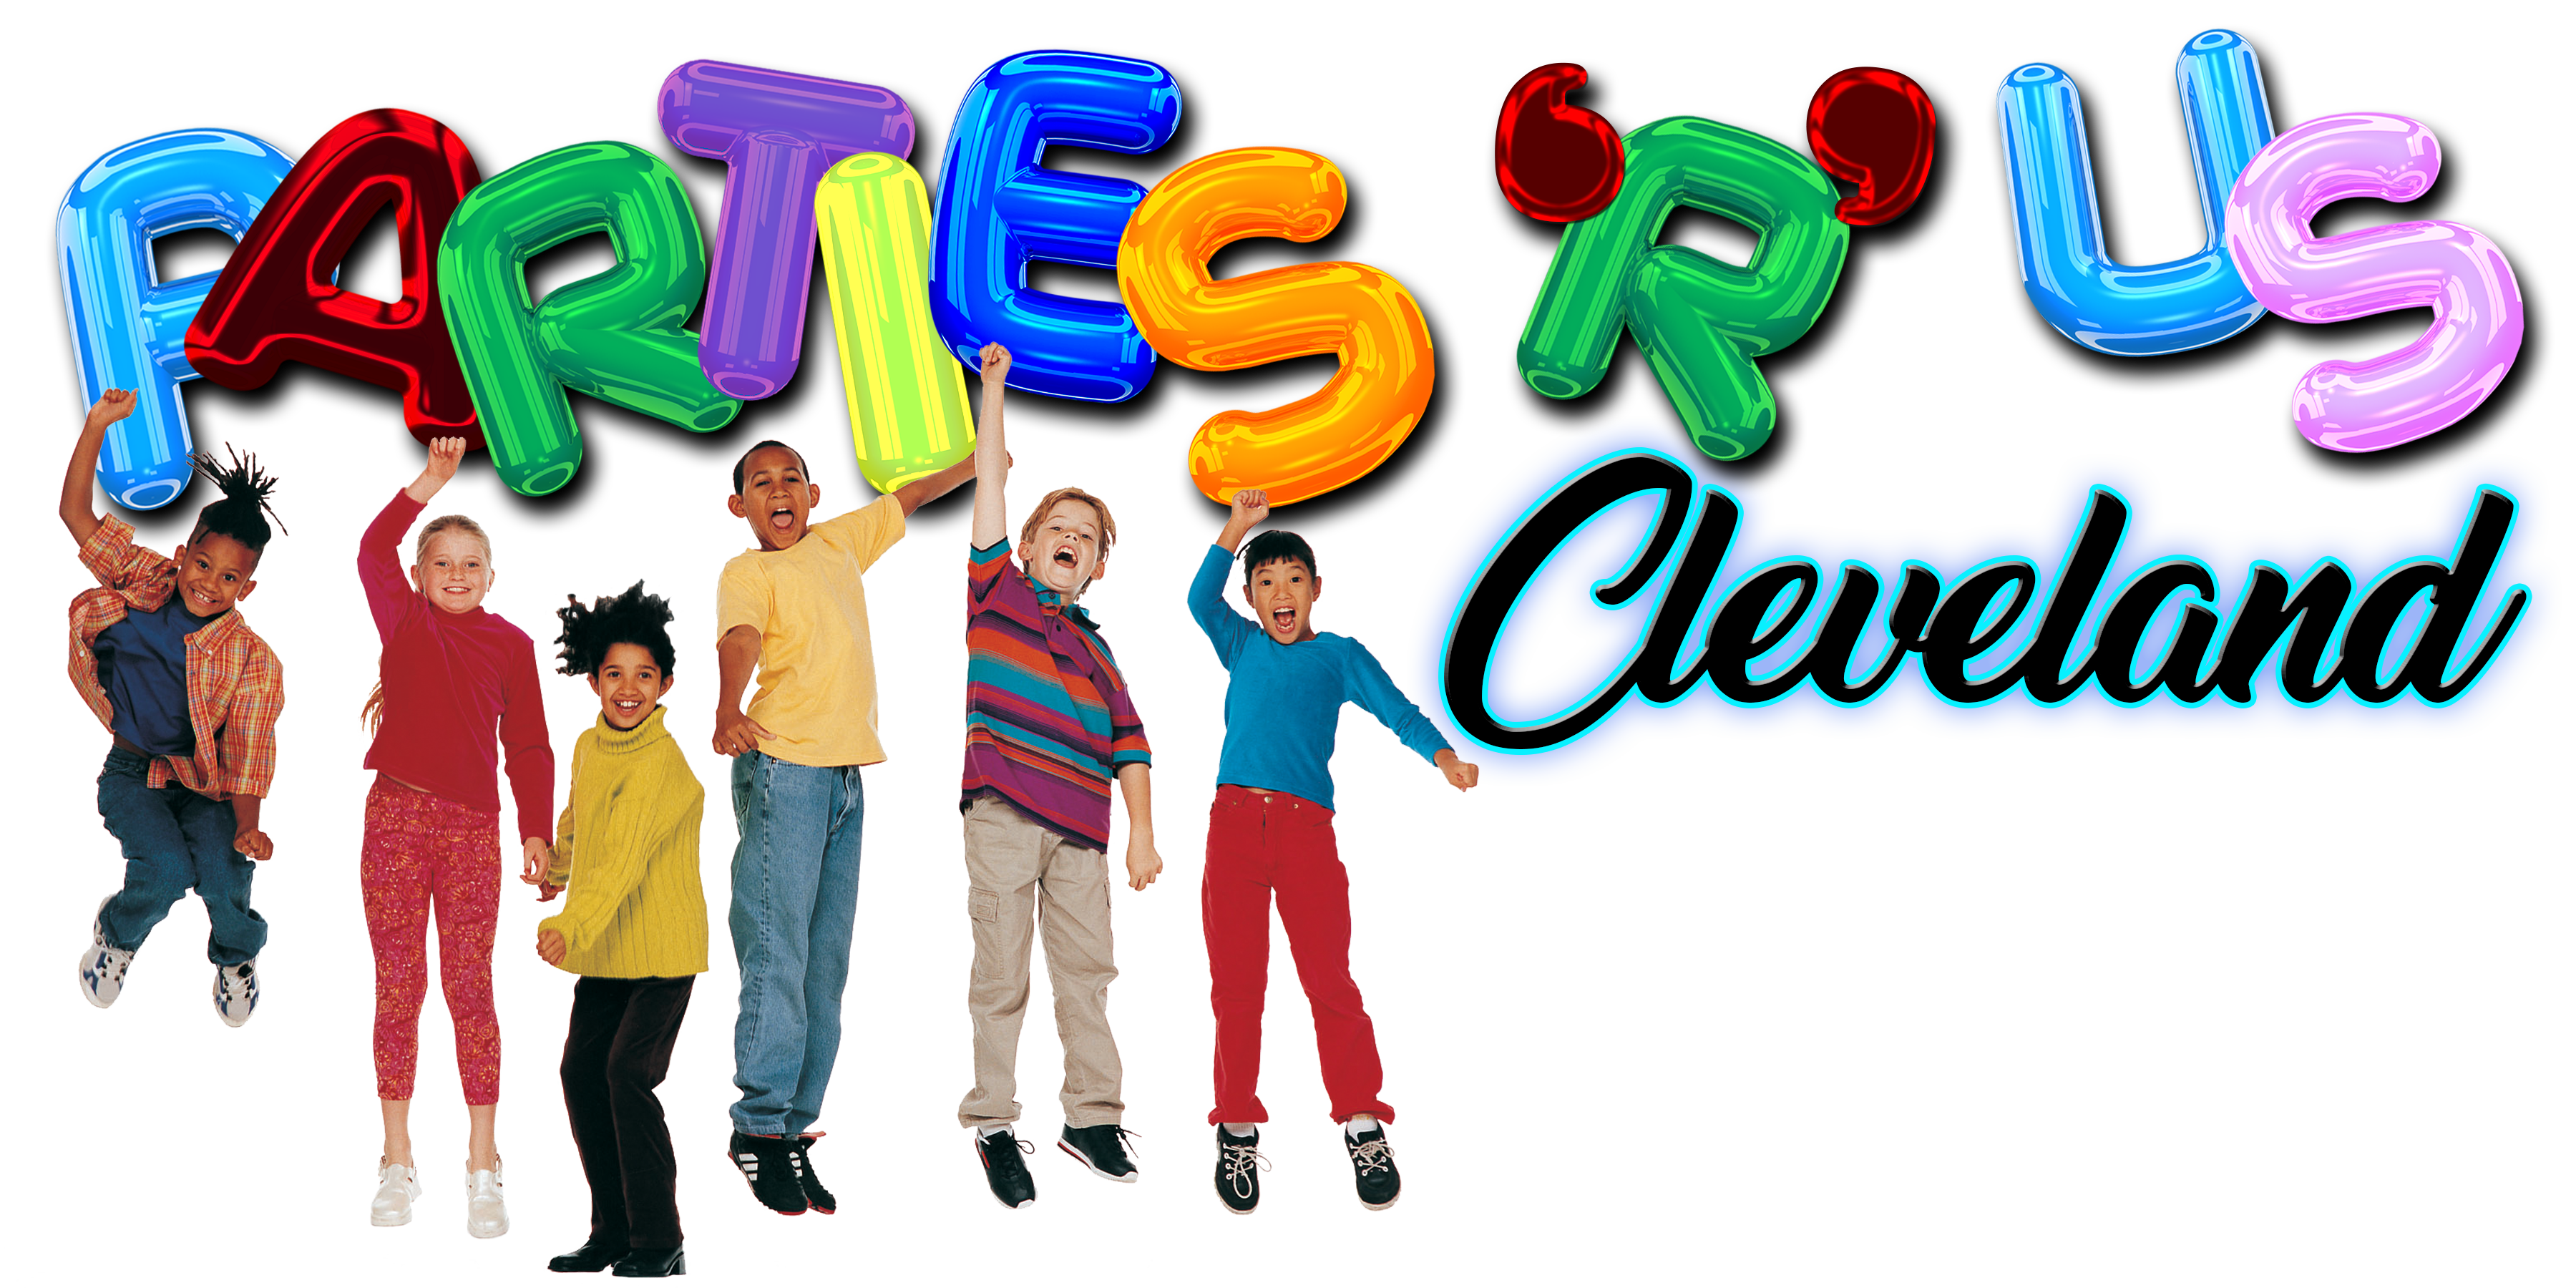 Parties r us . Teen clipart welcome party